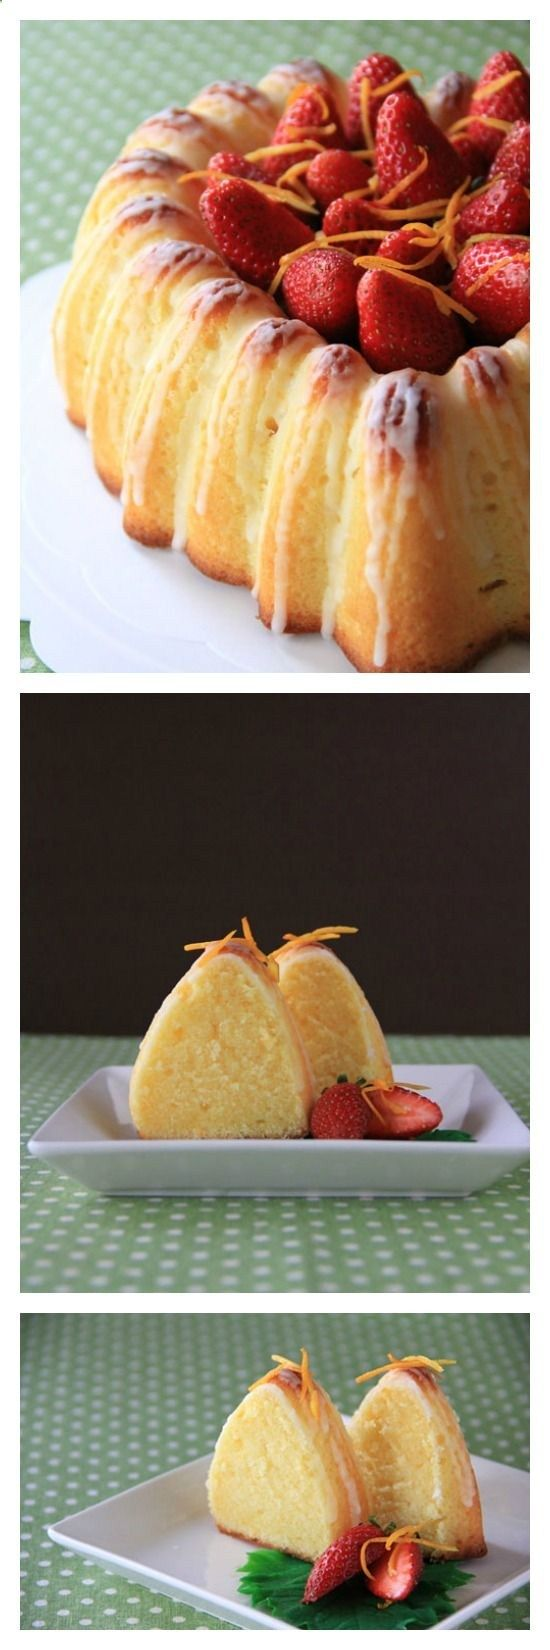 Sicilian Orange Cake Recipe, citrusy, rich, and buttery cake with strawberries and glaze. A must-bake if you love butter cake   http://rasamalaysia.com